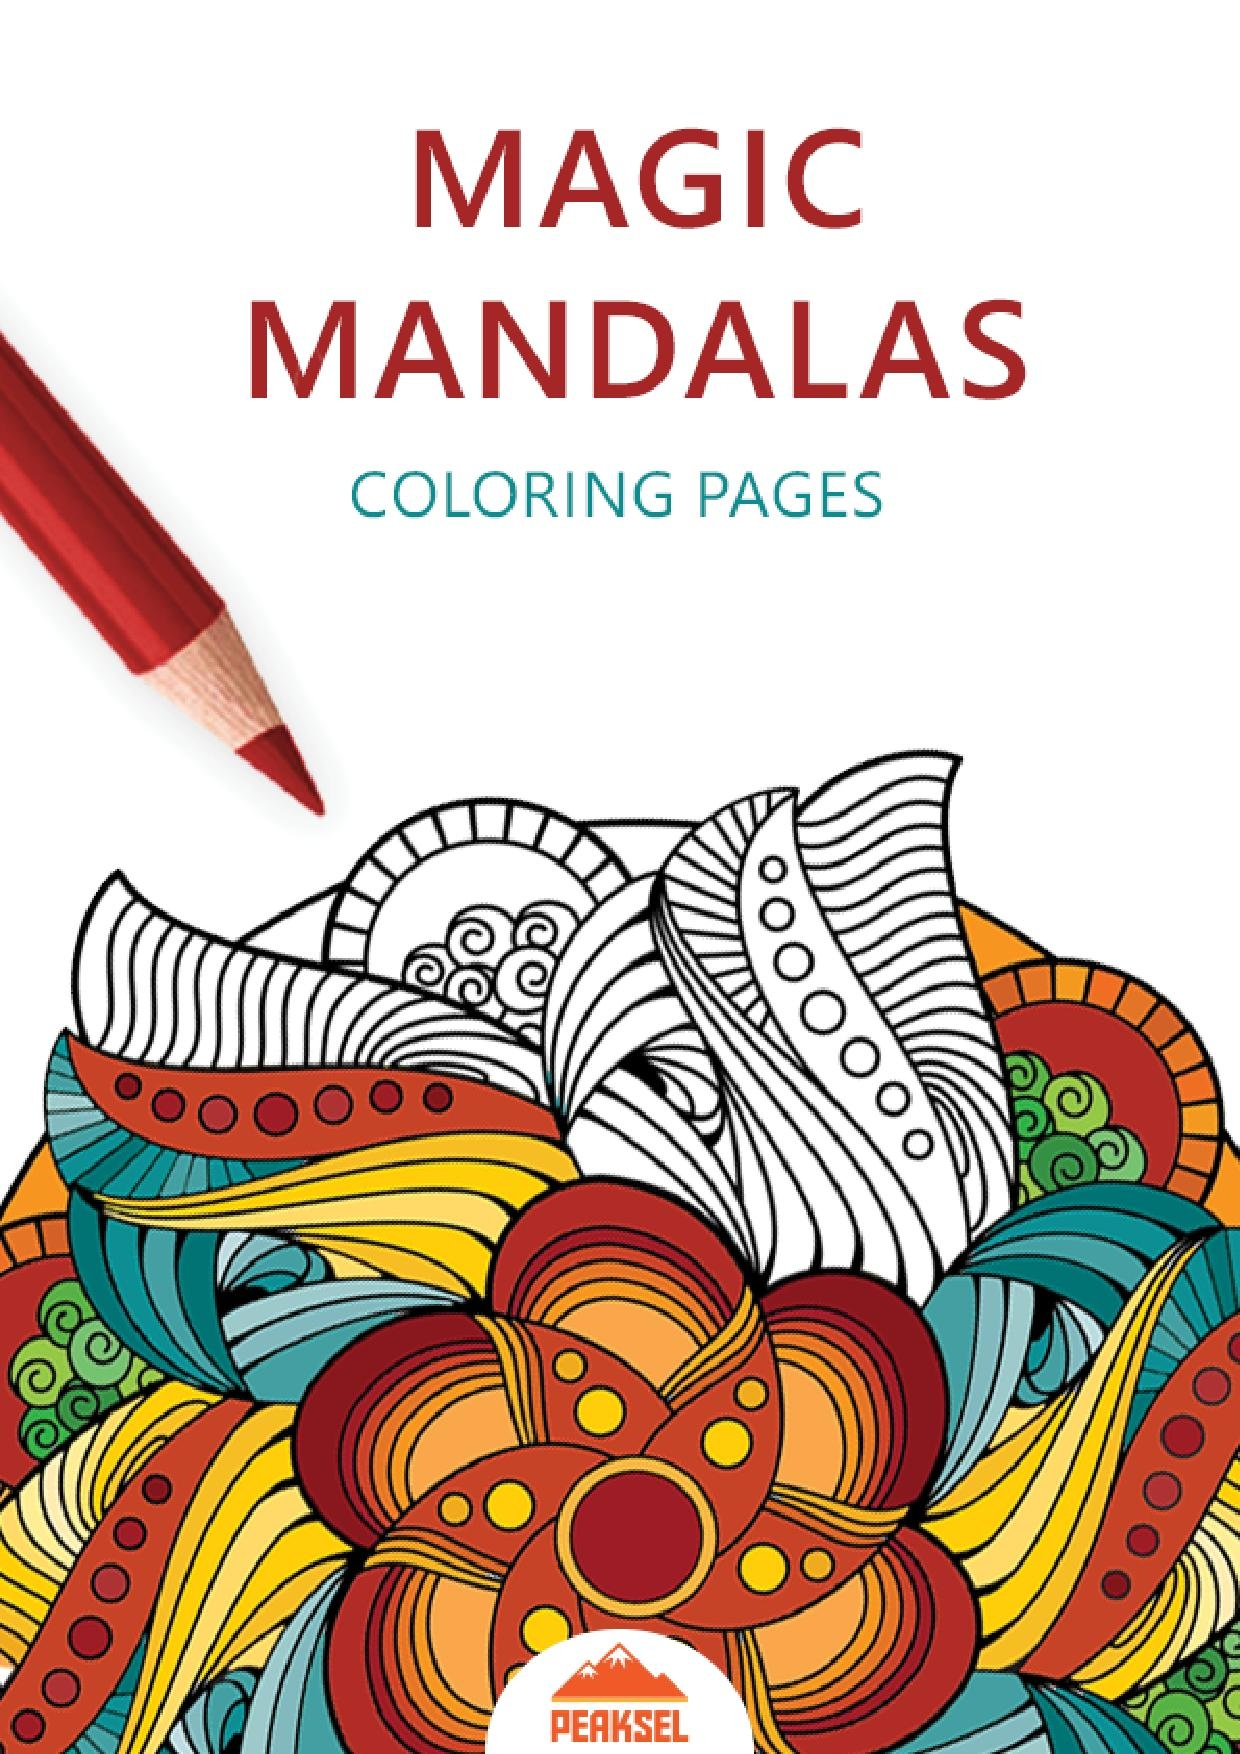 File Magic Mandala Coloring Pages Printable Coloring Book For Adults Pdf Wikimedia Commons